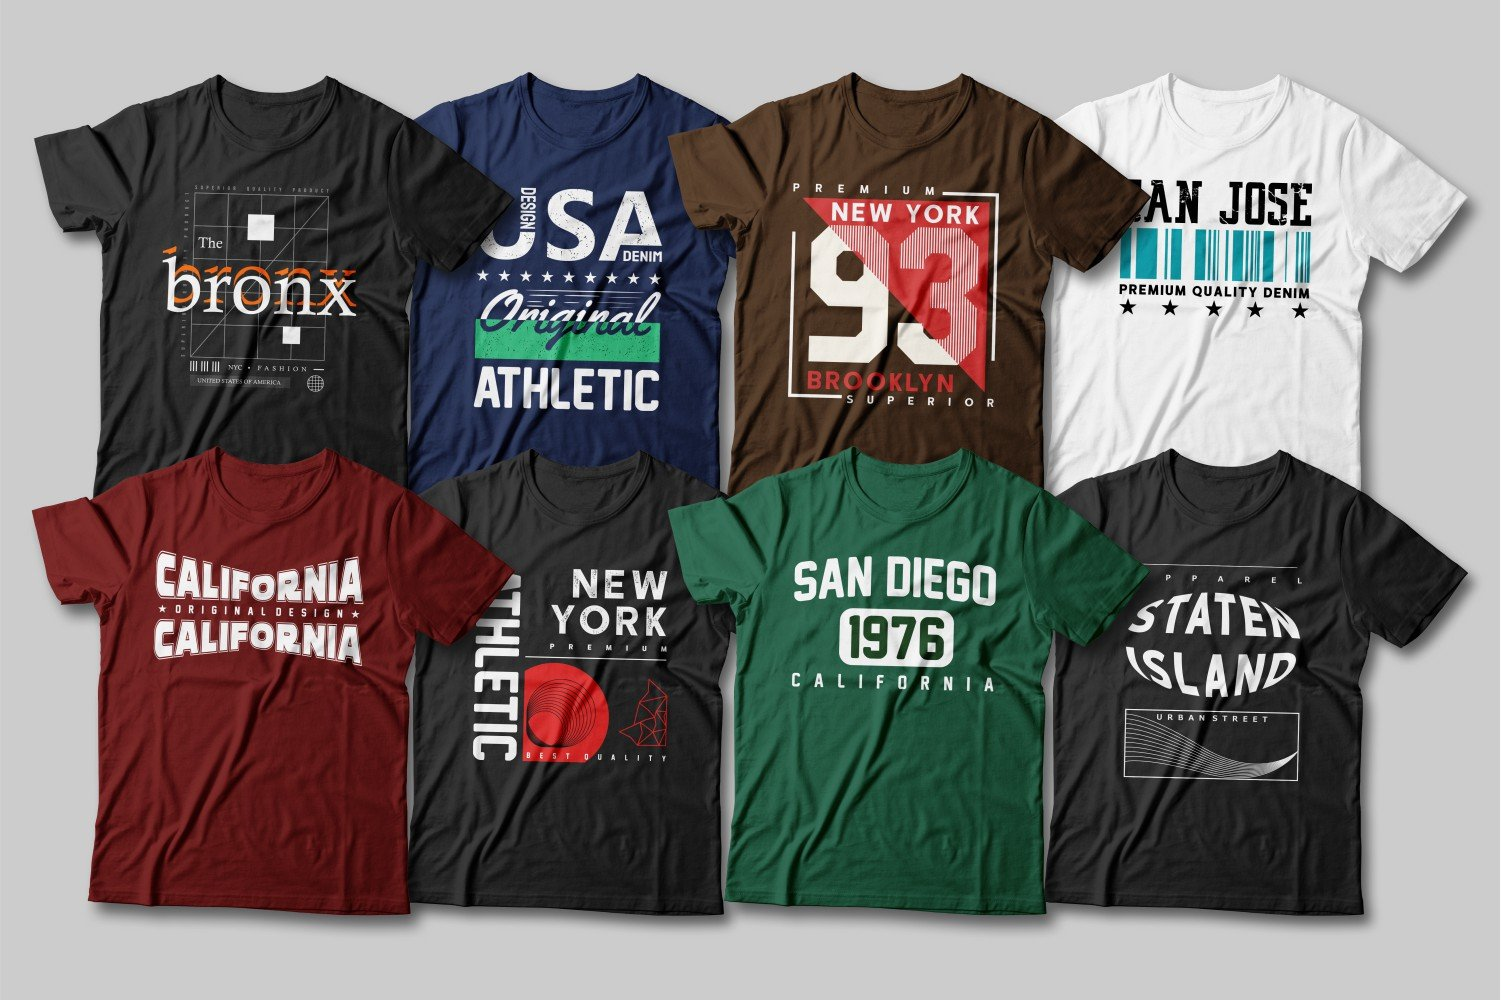 Multicolored T-shirts with different inscriptions and fonts.